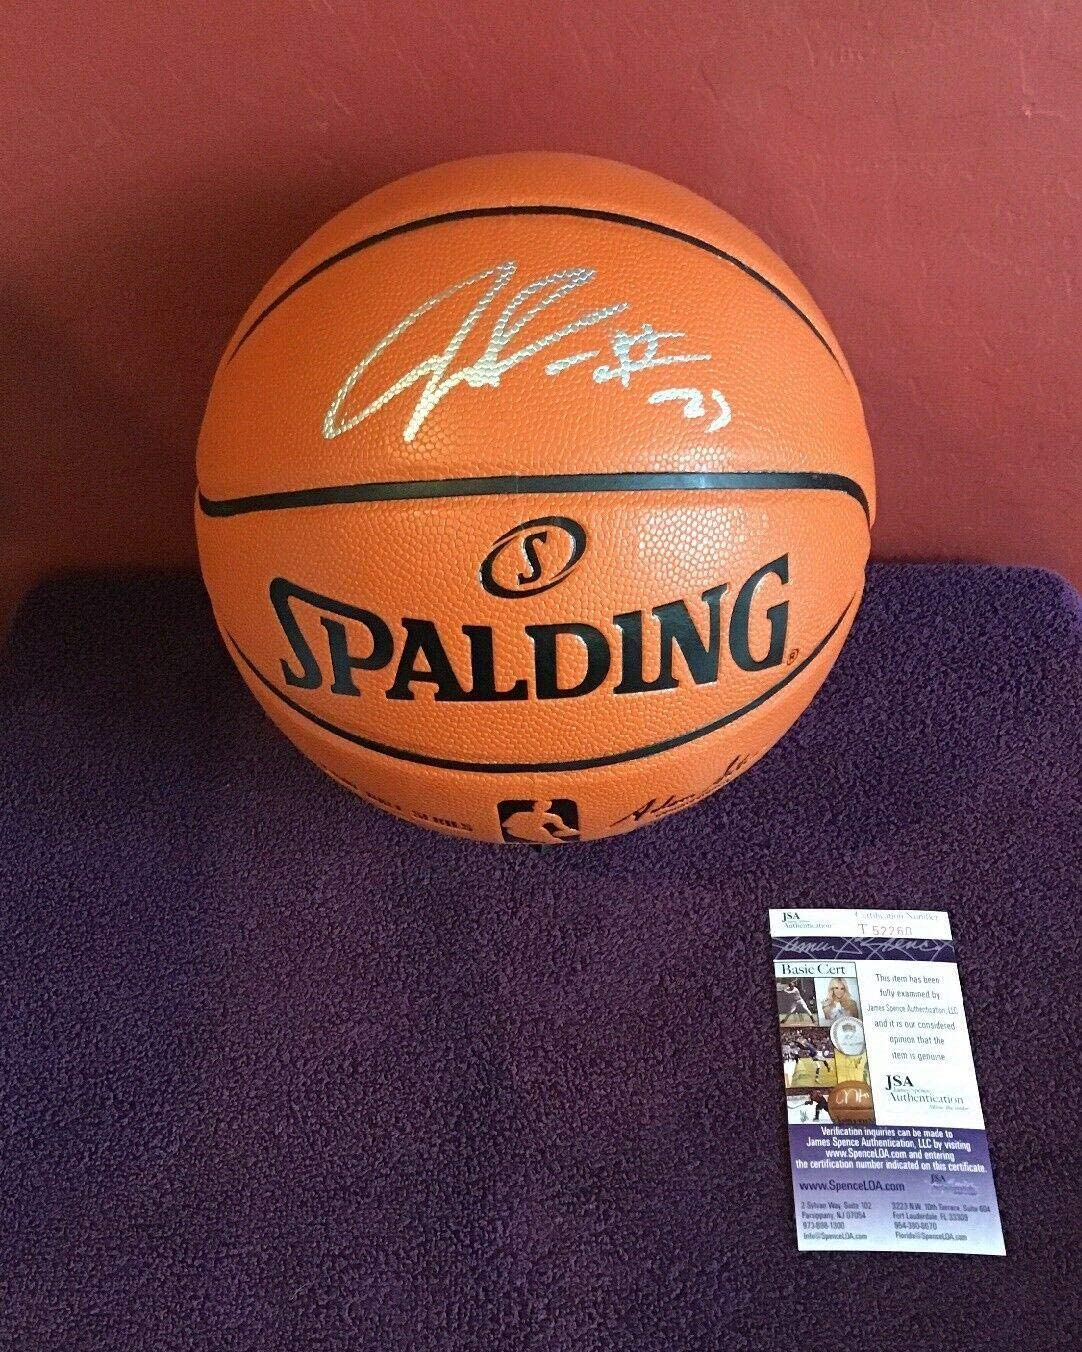 Julius Randle Autographed Ball - Spalding Certified - JSA Certified - Autographed Basketballs